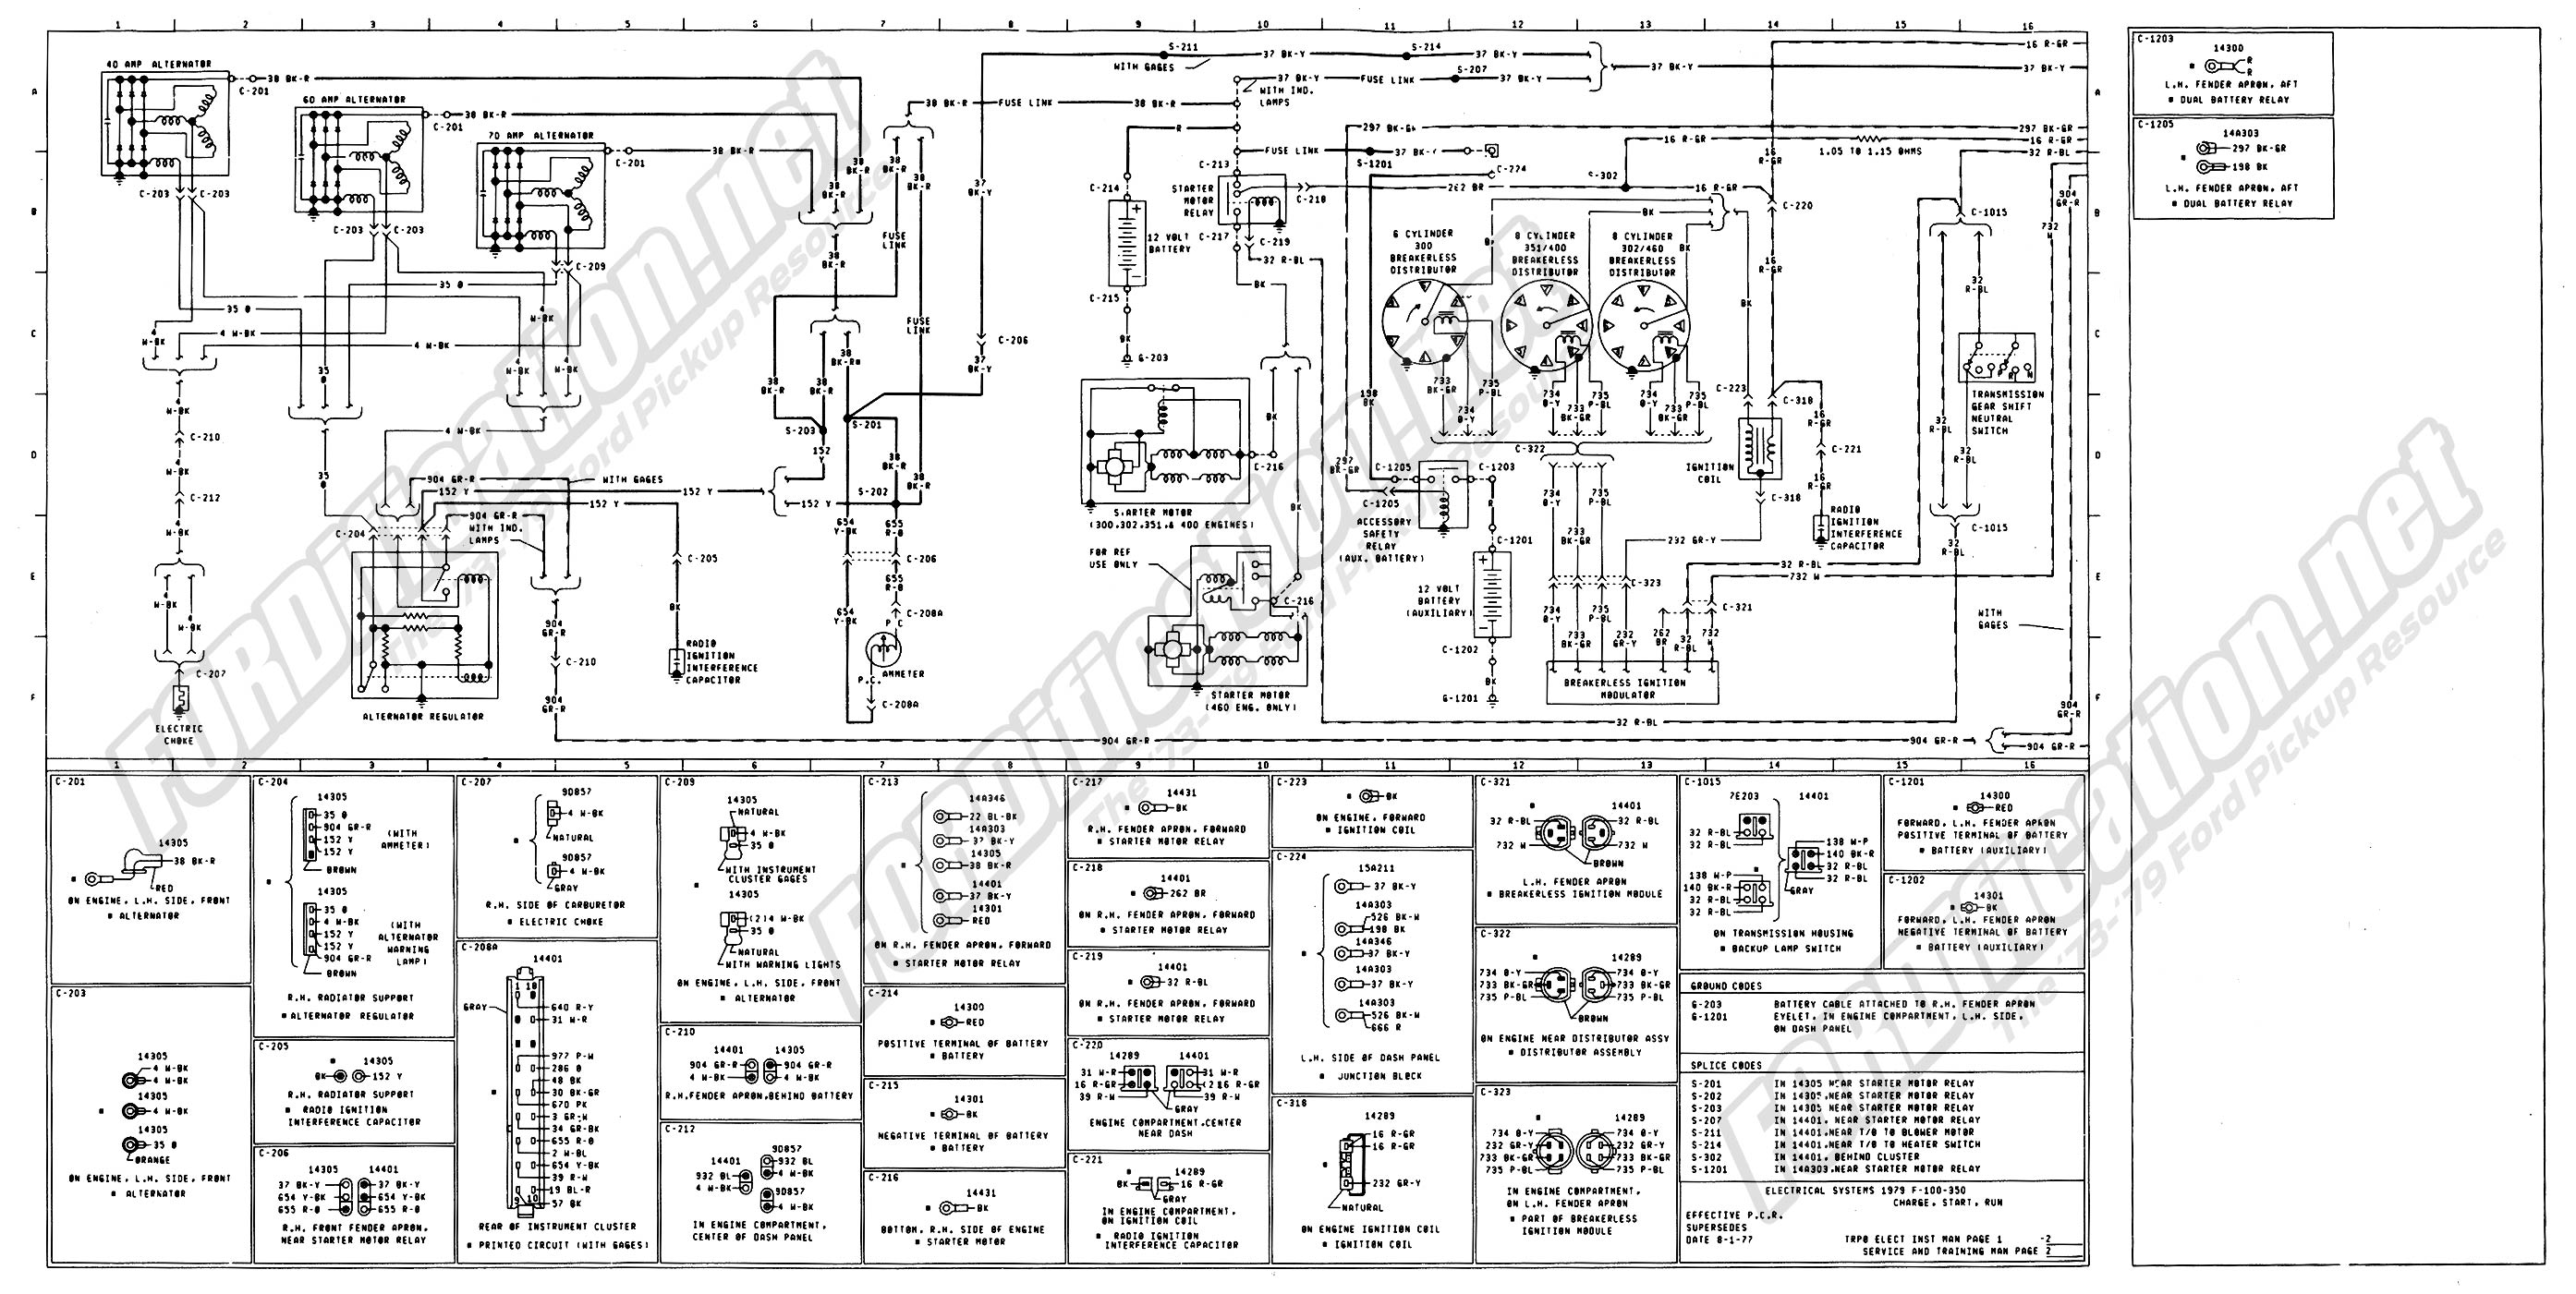 1973 1979 ford truck wiring diagrams schematics fordification net page 02